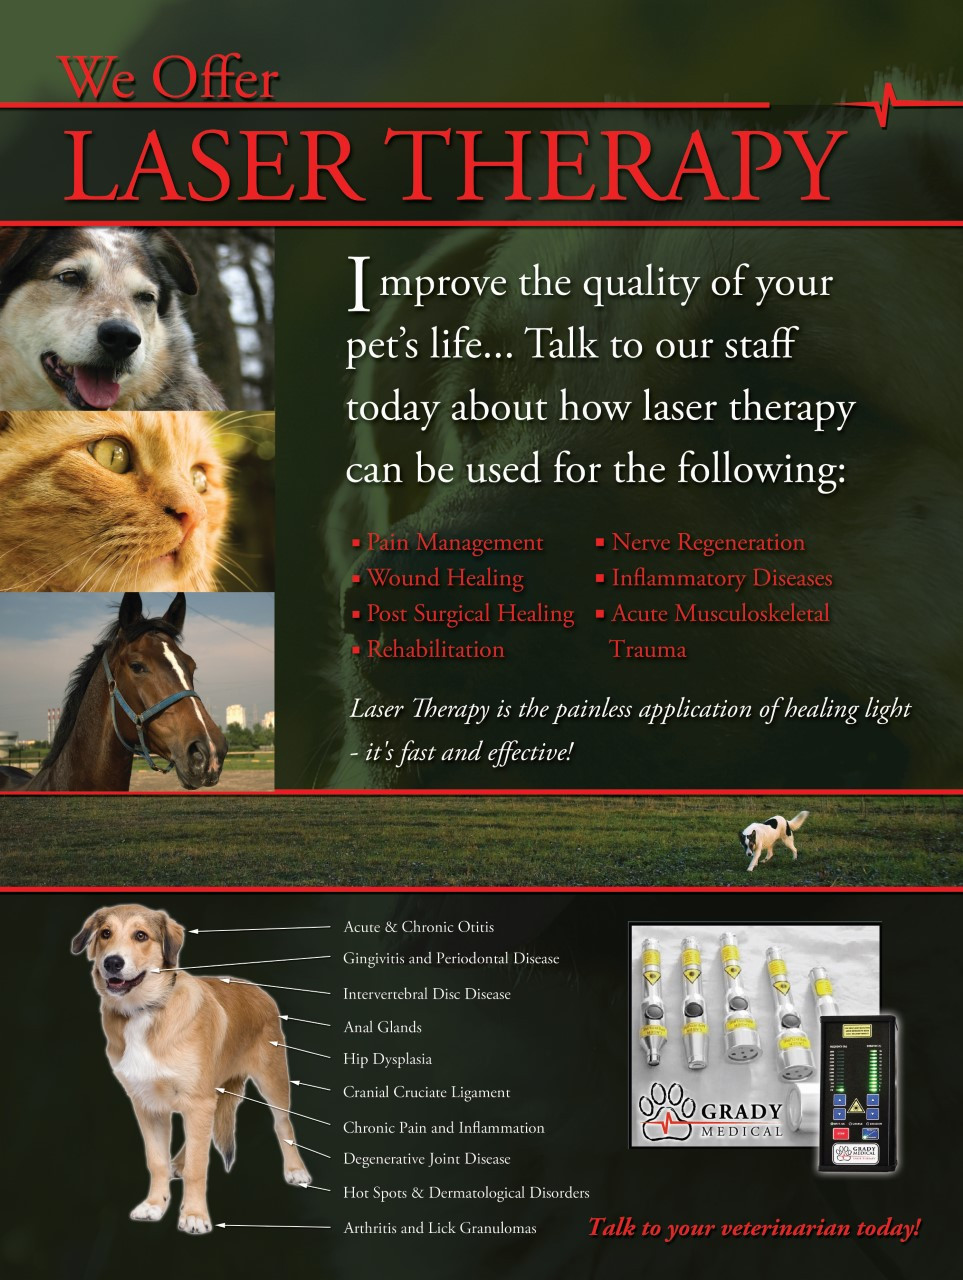 We offer laser therapy